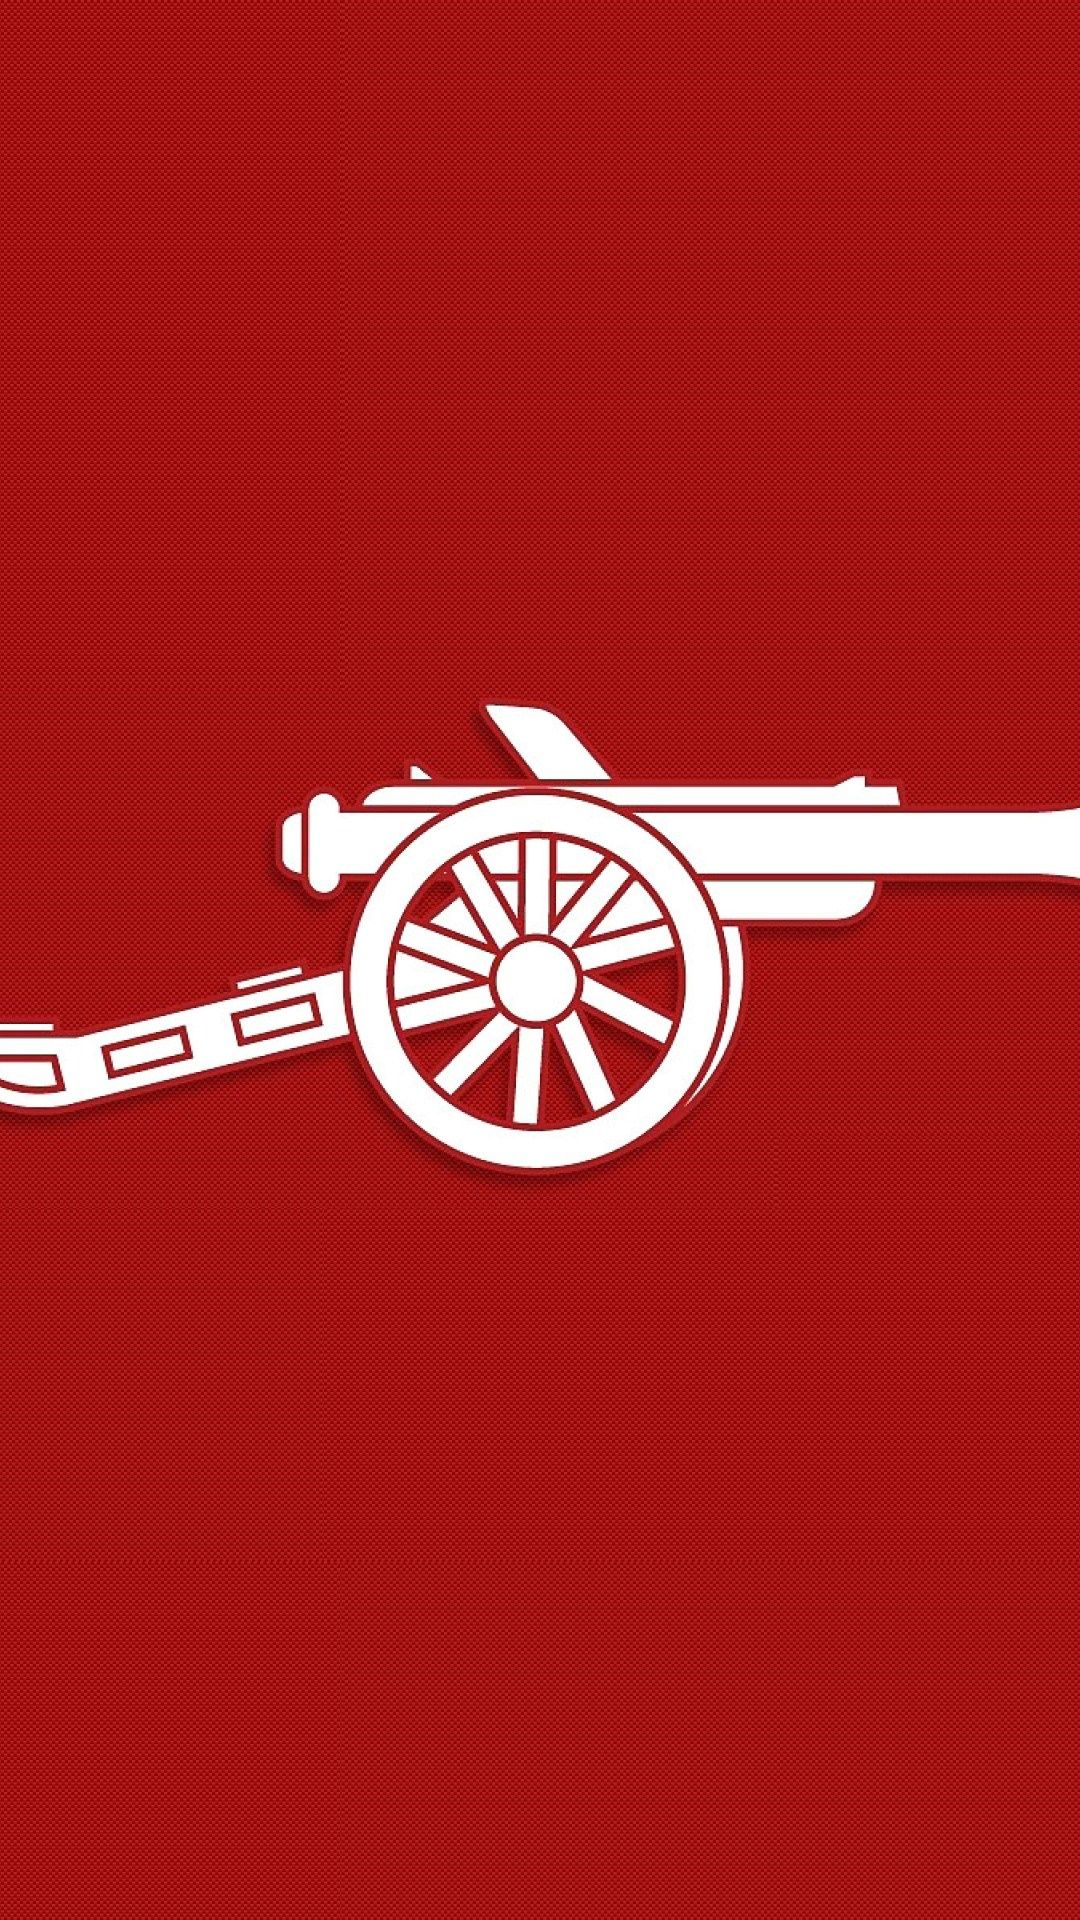 Arsenal Iphone Wallpapers Top Free Arsenal Iphone